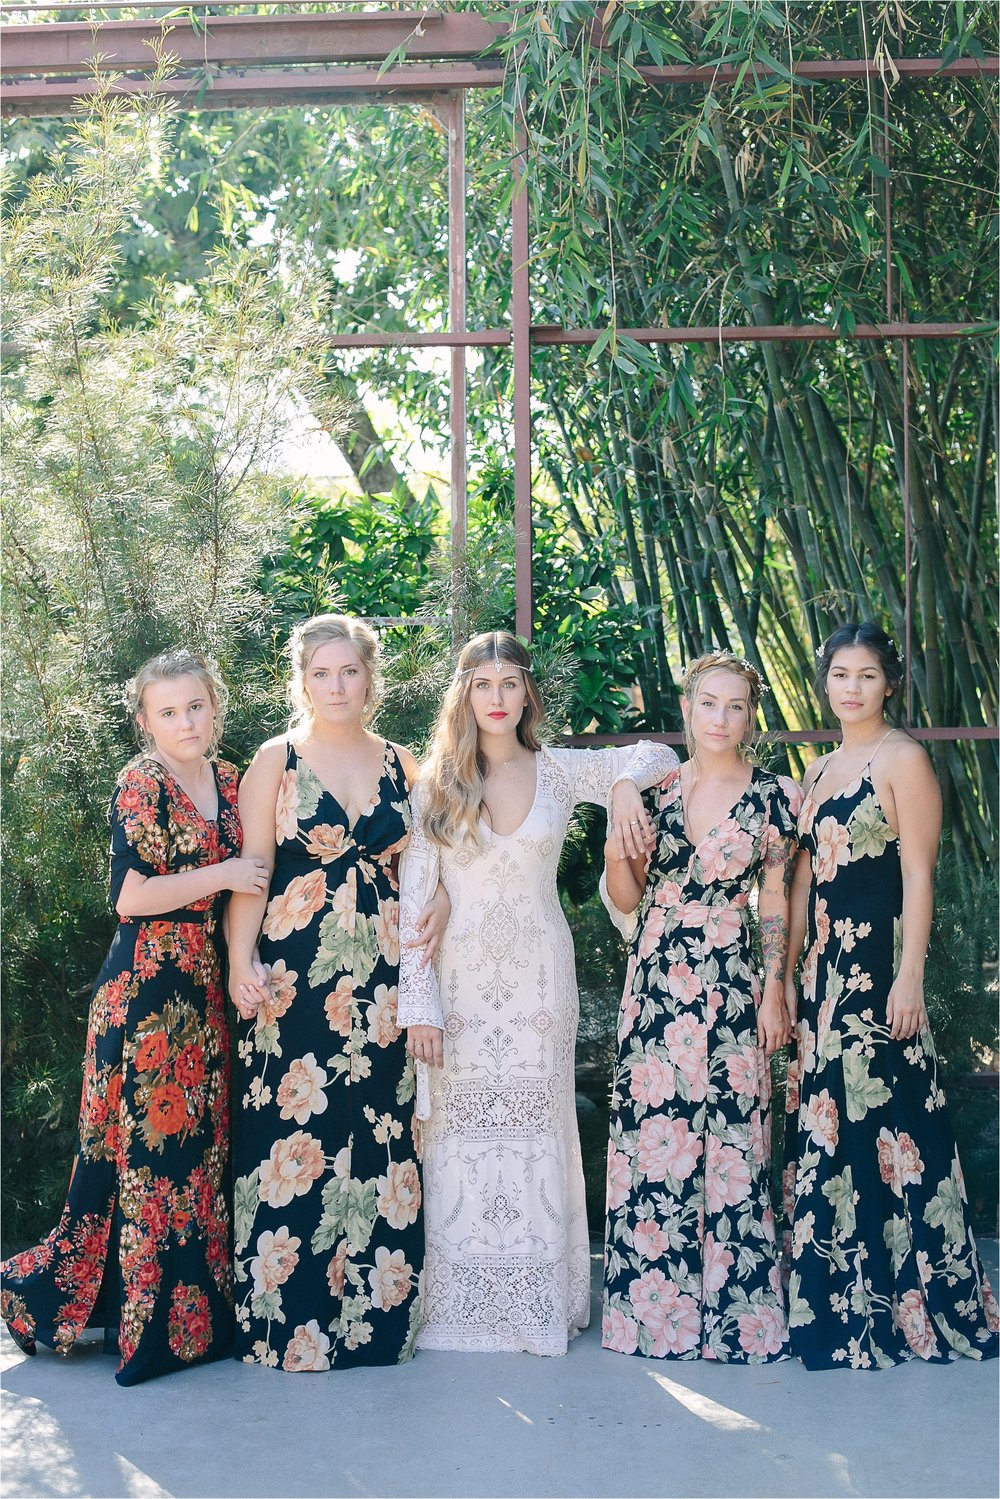 Gorgeous Bride & Bridesmaids in perfect golden light